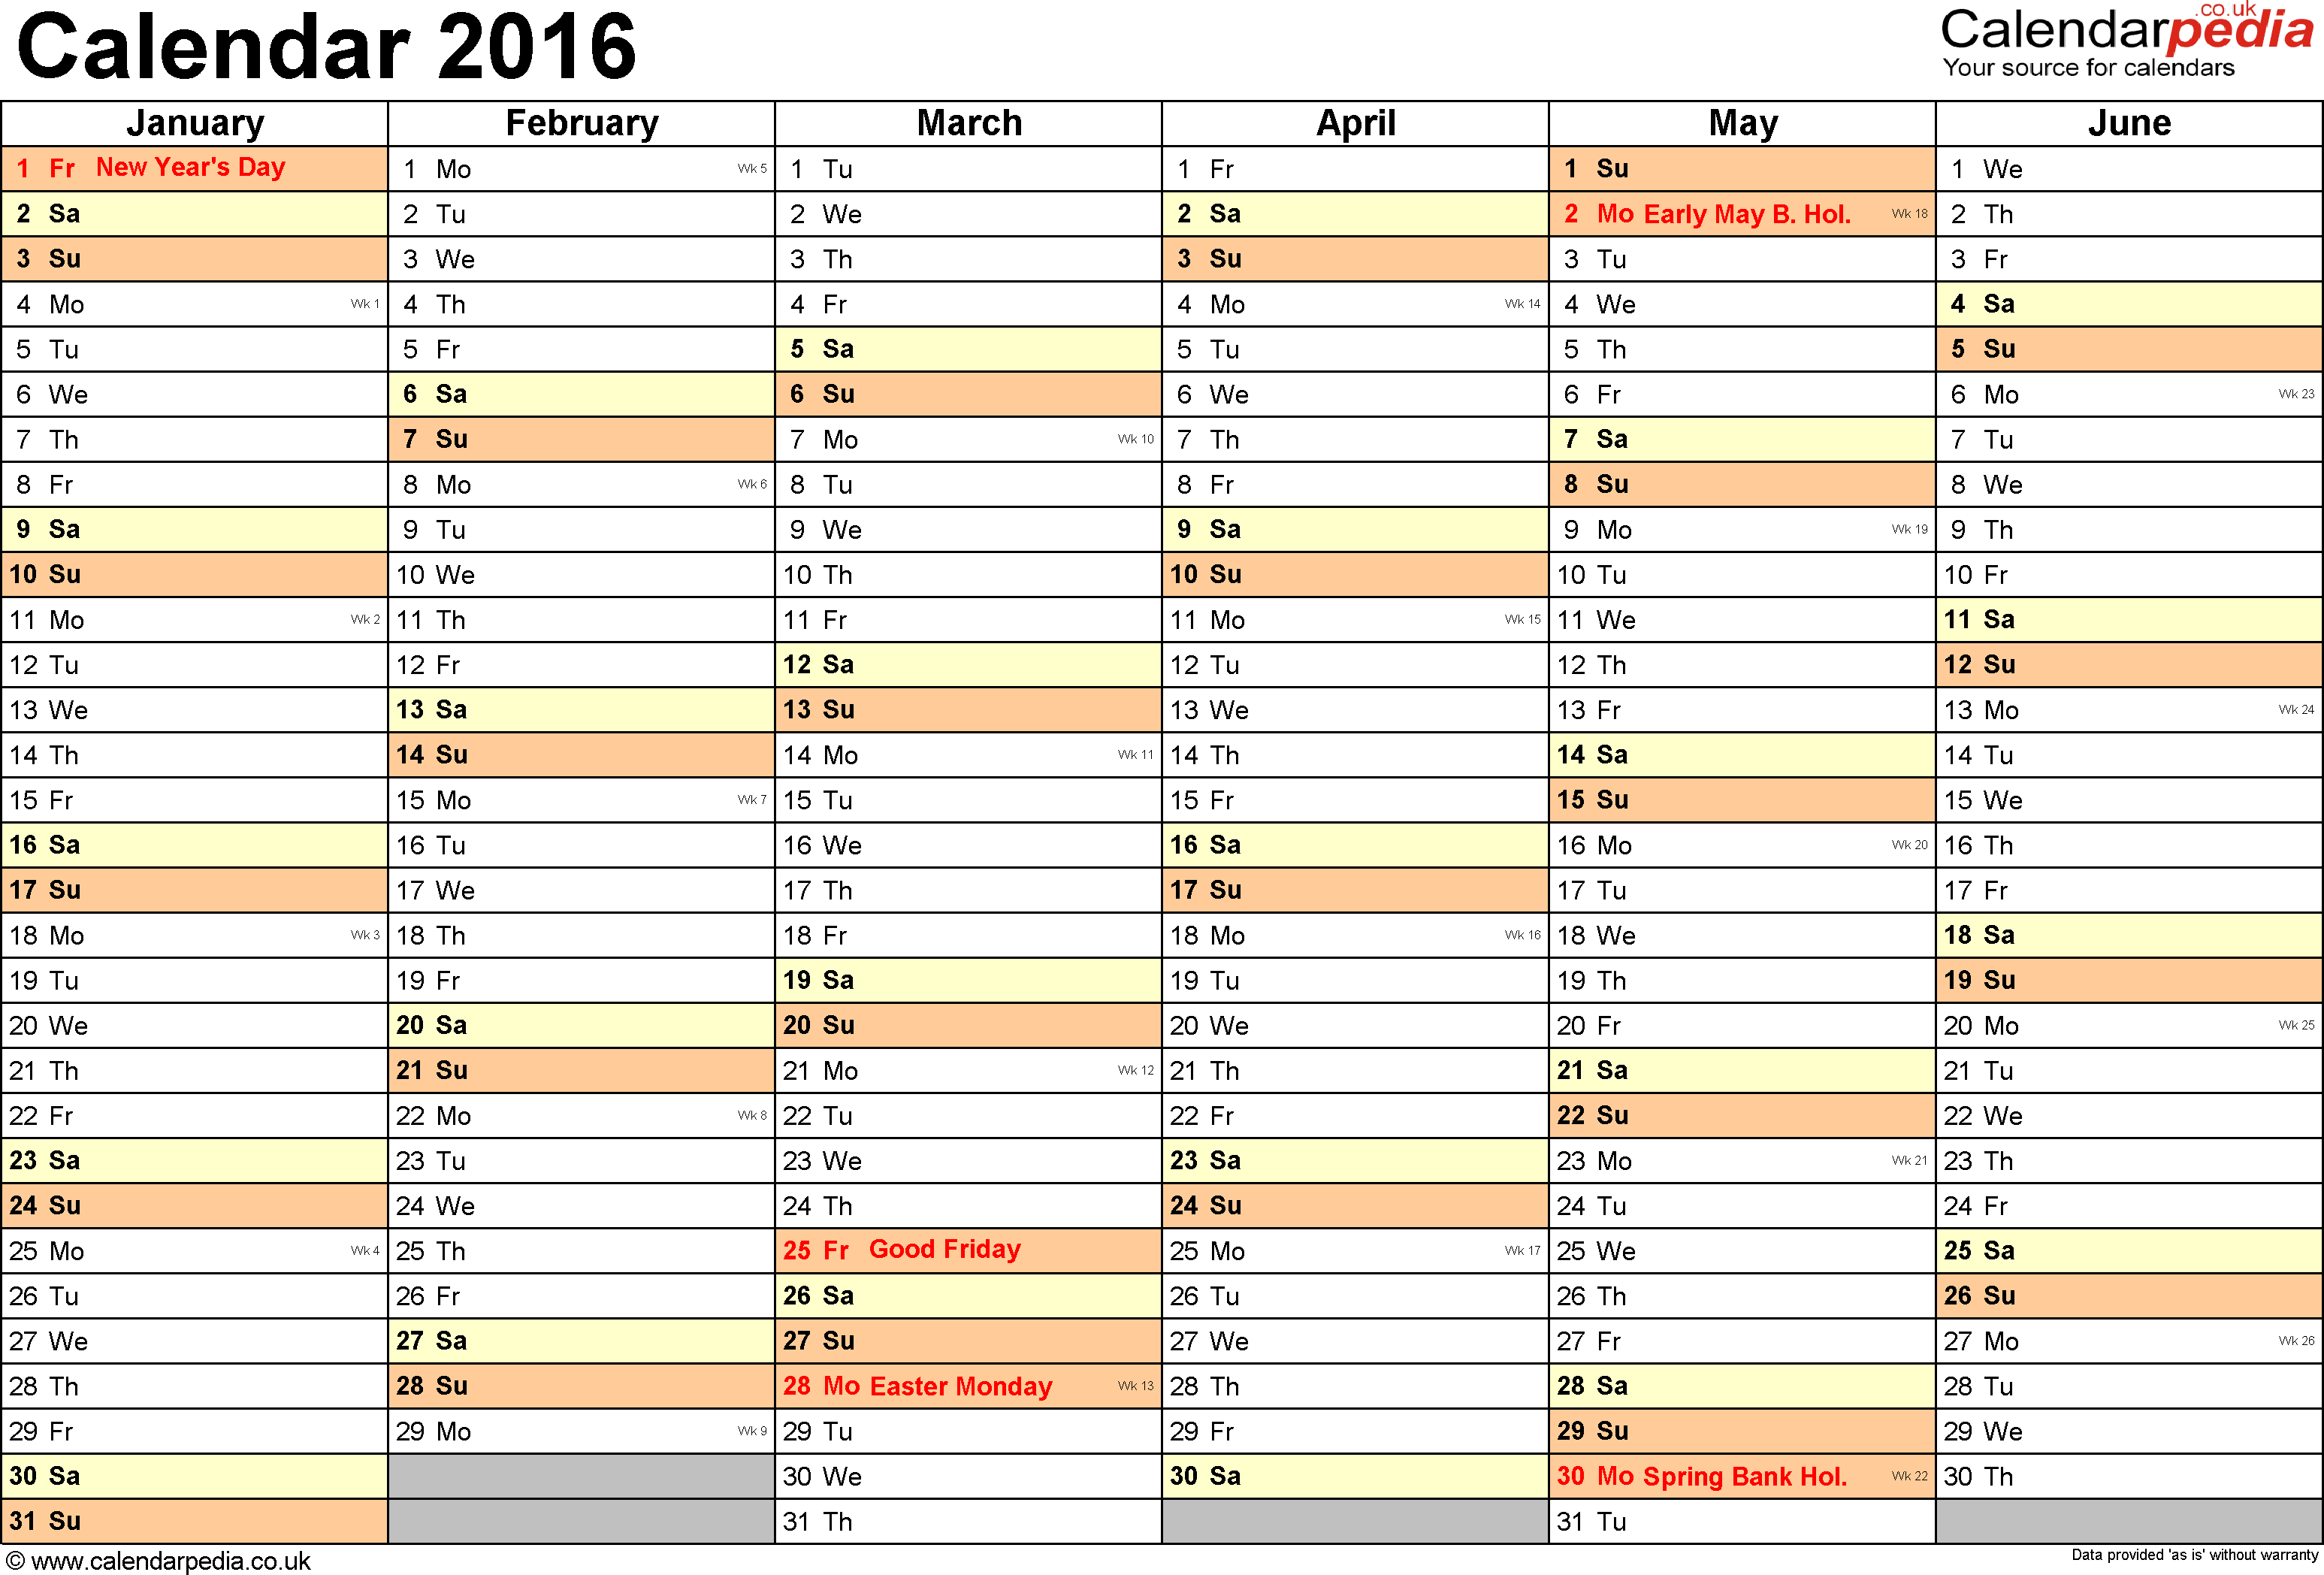 Weekly Calendar Template With Time Slots : Weekly printable calendar with time slots